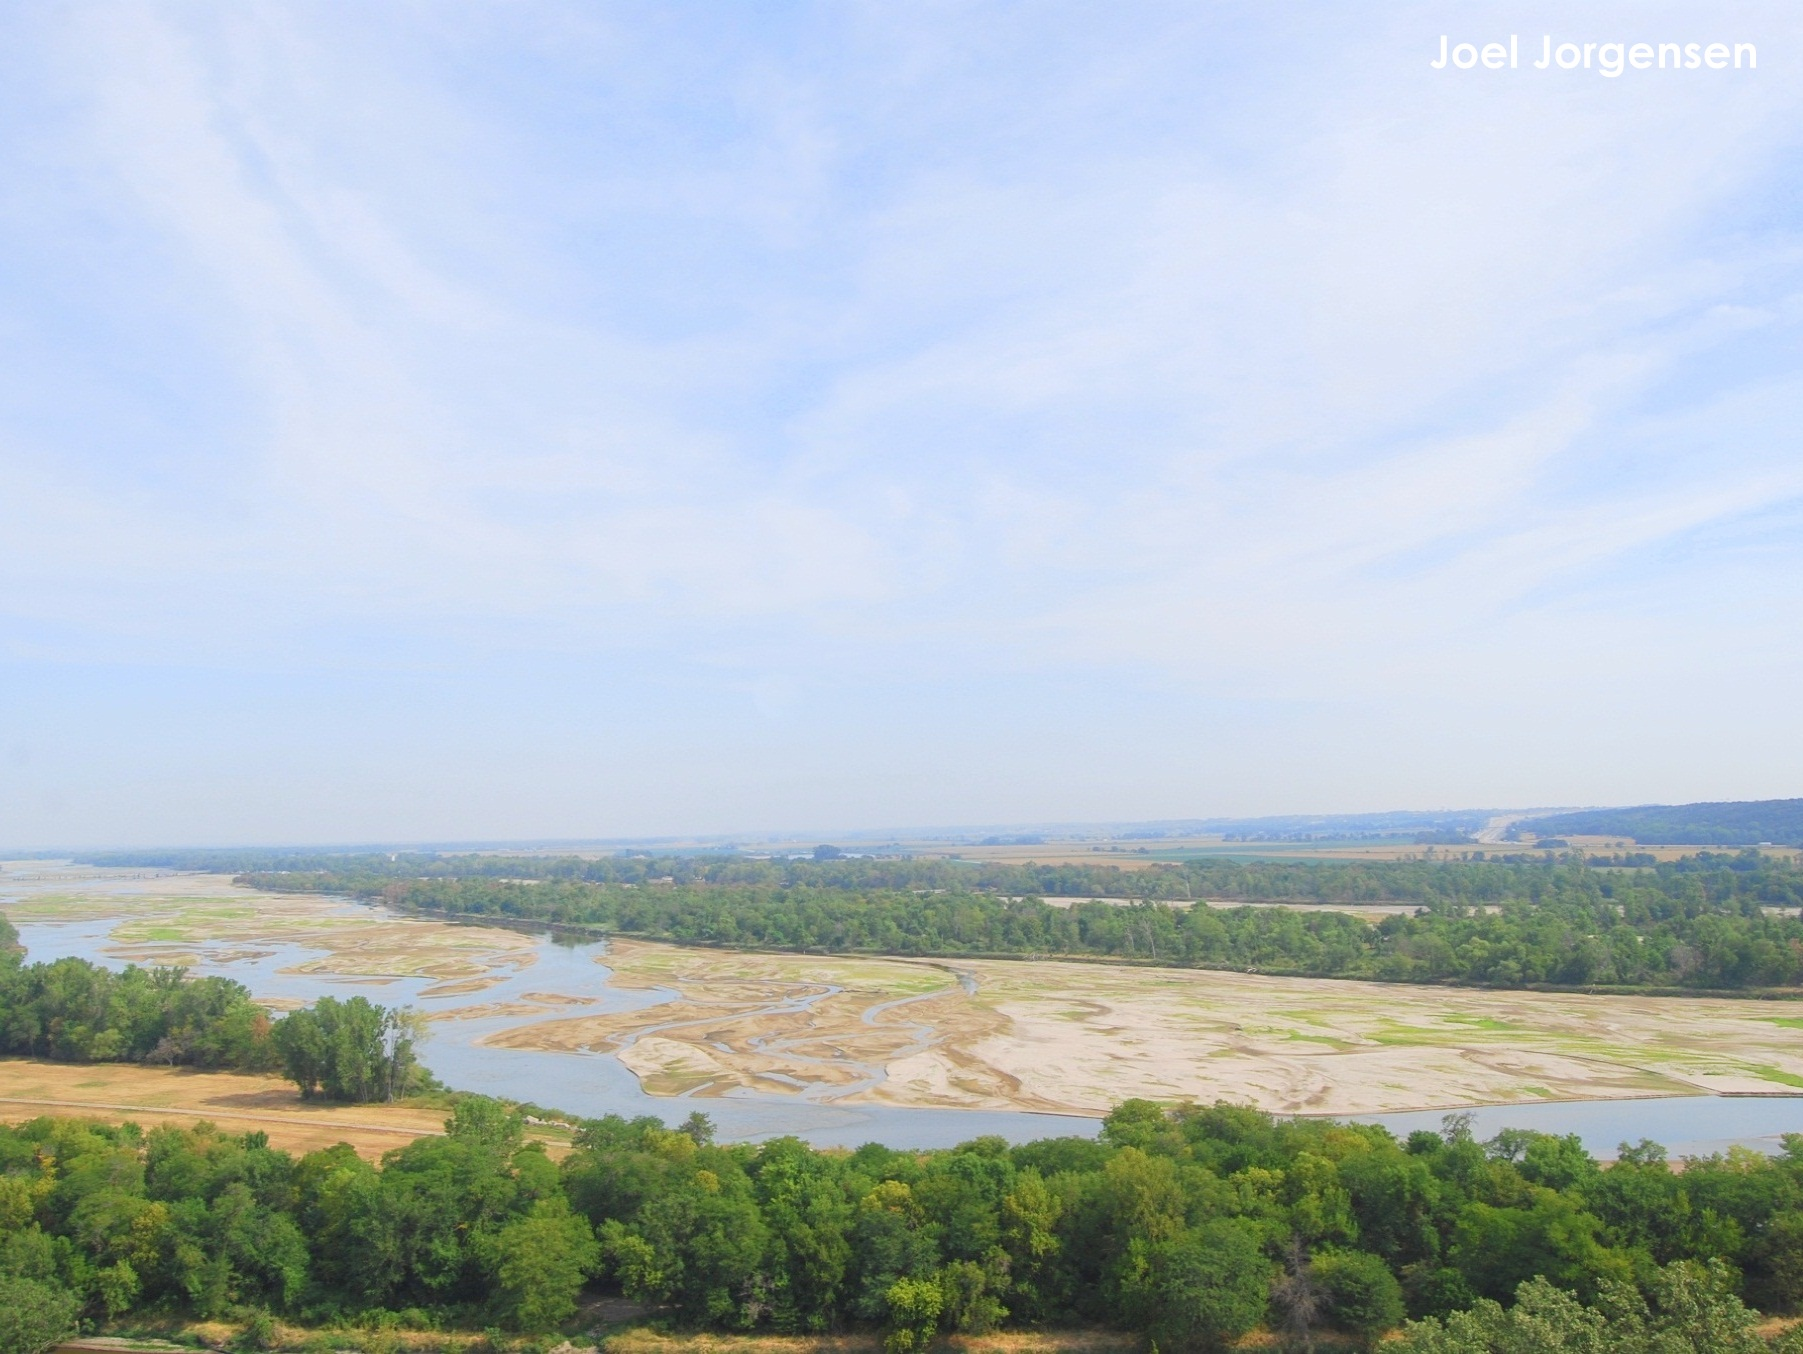 Lower Platte River during the 2012 drought and tern and plover breeding season. Photo taken from Mahoney State Park Tower.